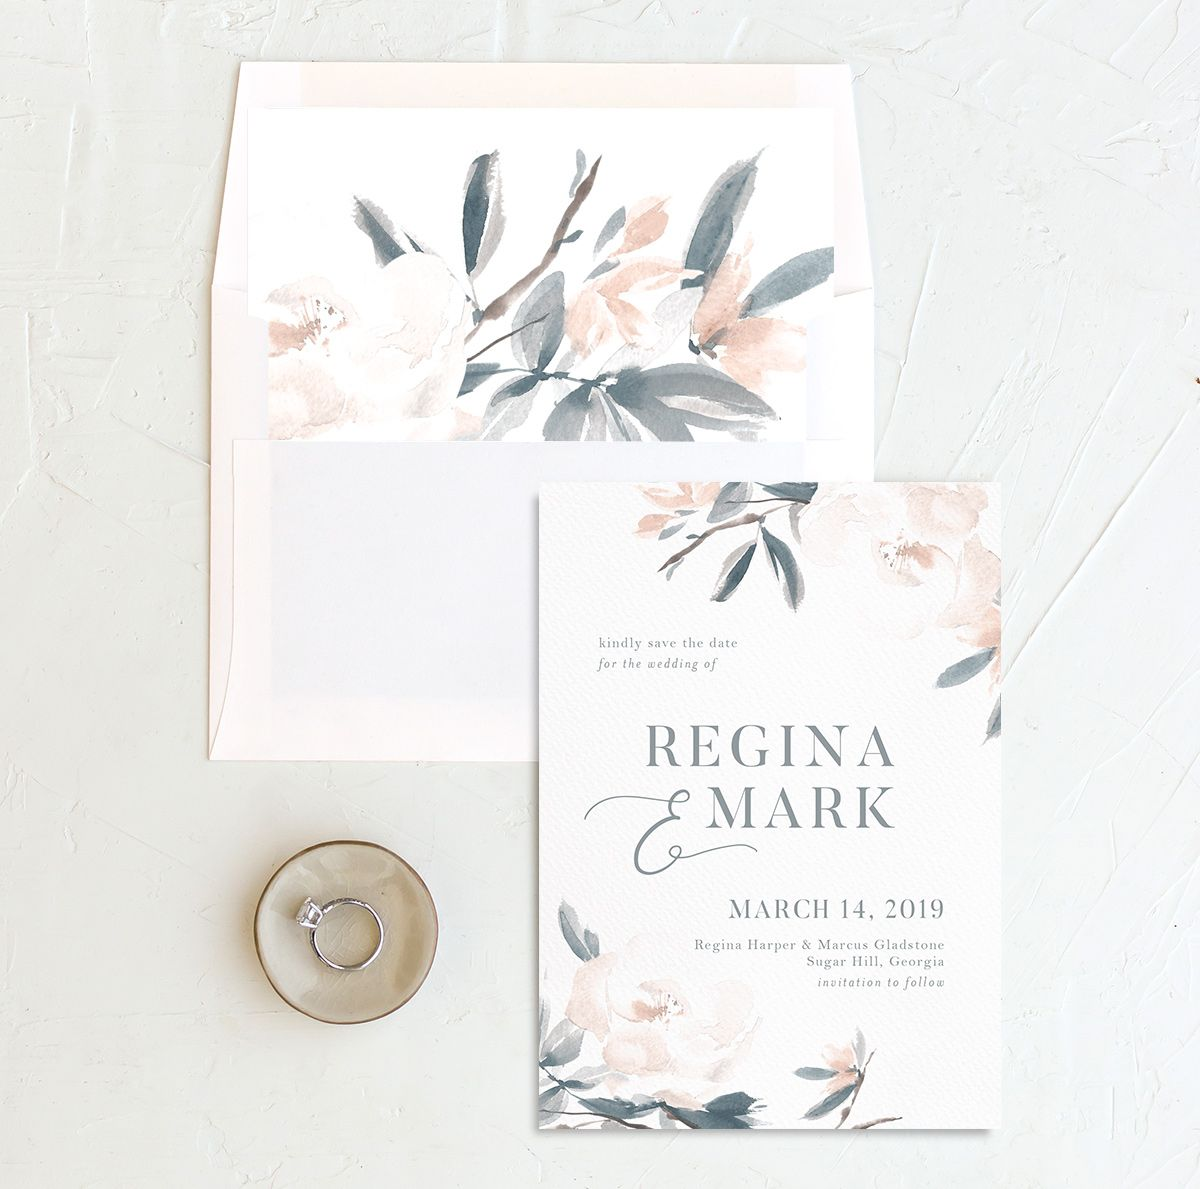 Elegant Garden wedding announcement in blue